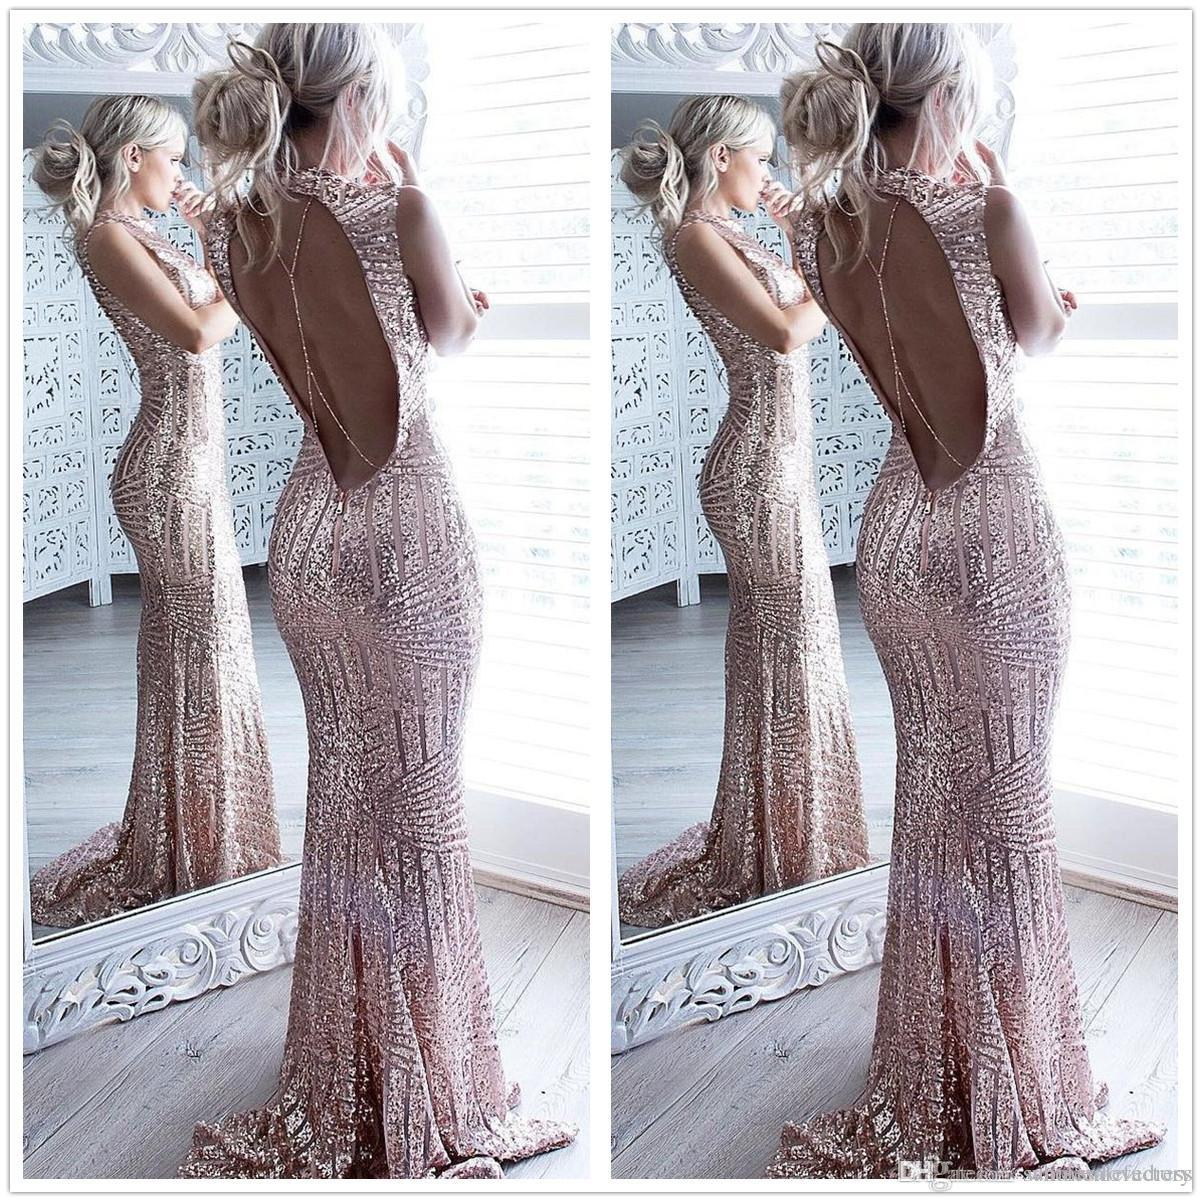 2e182ef8 Sexy Rose Gold Backless Mermaid Sequined Long Prom Dresses High Neck Full  Length Elegant Vintage Long Formal Party Evening Gowns Jr Prom Dresses Long  White ...